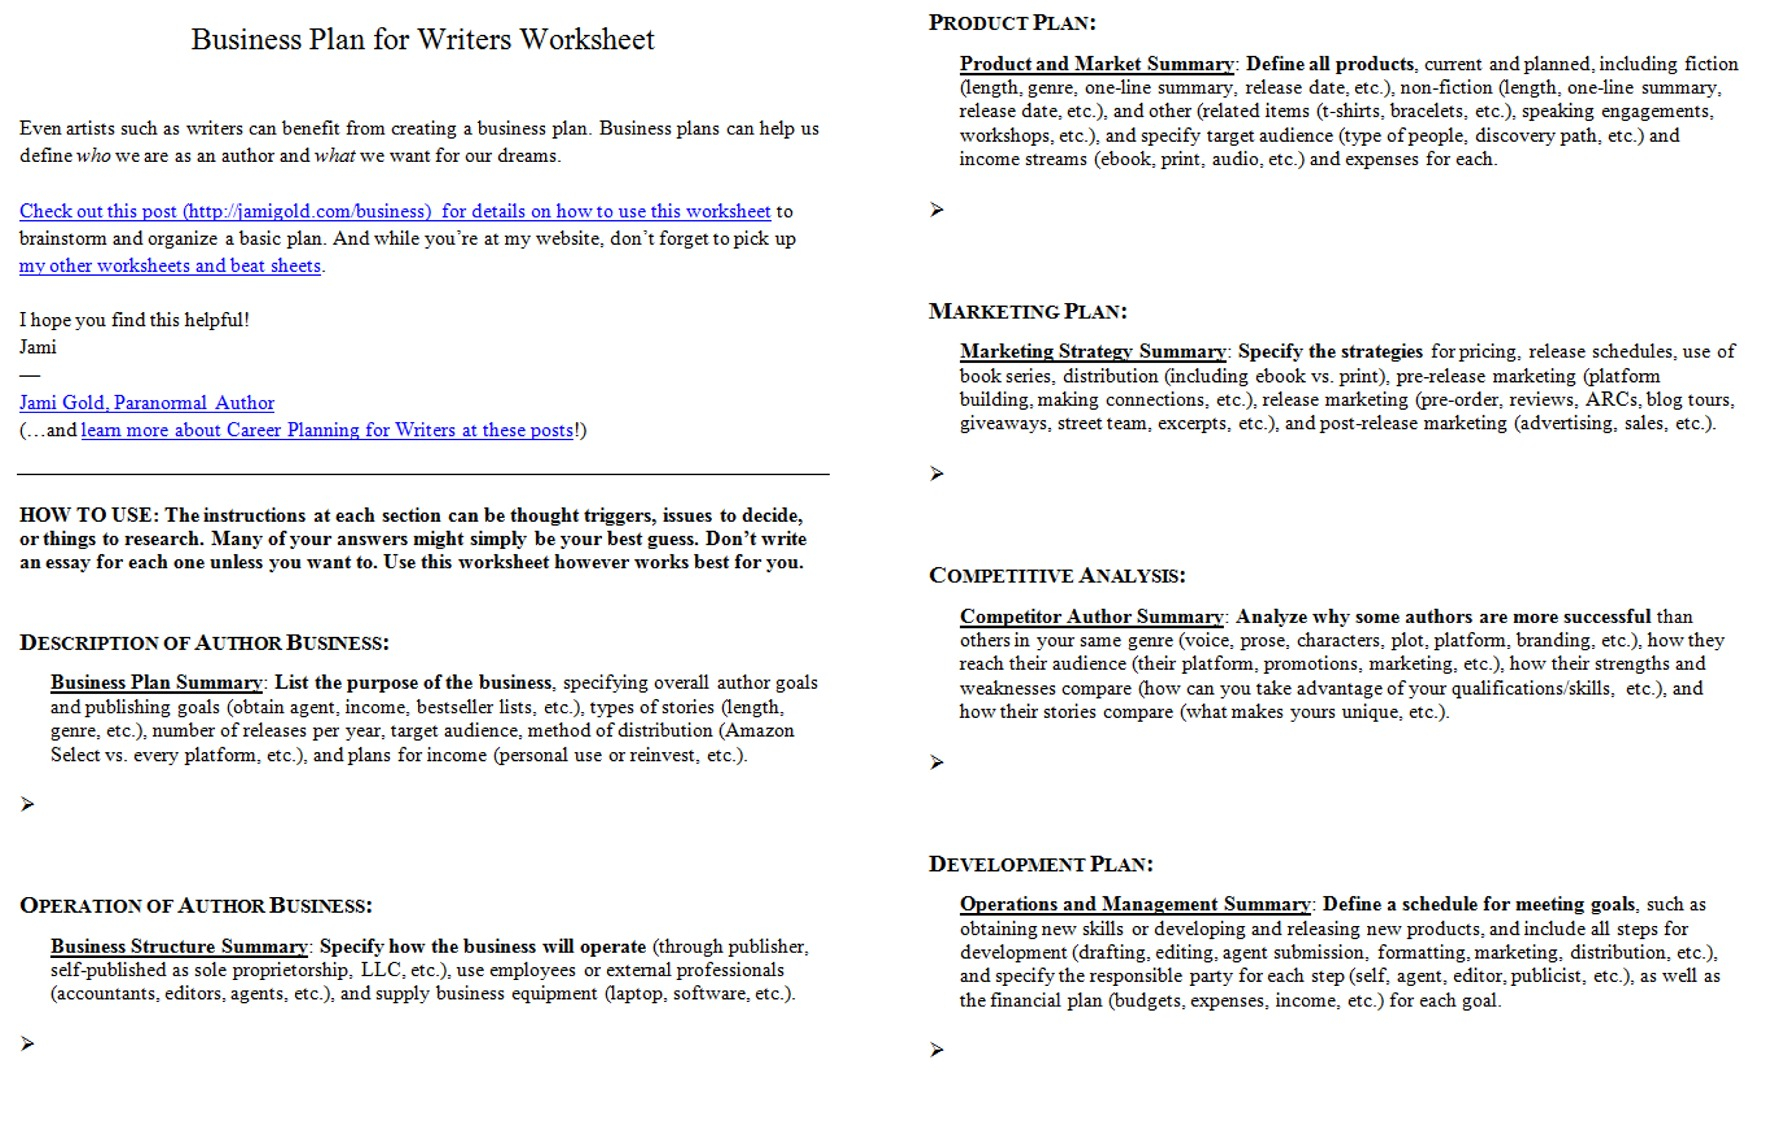 Aldiablosus  Nice Worksheets For Writers  Jami Gold Paranormal Author With Magnificent Screen Shot Of Both Pages Of The Business Plan For Writers Worksheet With Archaic English For St Graders Worksheets Also Healthy Eating Pyramid Worksheet In Addition Halloween Maths Worksheets And Simple Past Tense Worksheets For Grade  As Well As Health And Safety Worksheet Additionally Gallipoli Worksheets From Jamigoldcom With Aldiablosus  Magnificent Worksheets For Writers  Jami Gold Paranormal Author With Archaic Screen Shot Of Both Pages Of The Business Plan For Writers Worksheet And Nice English For St Graders Worksheets Also Healthy Eating Pyramid Worksheet In Addition Halloween Maths Worksheets From Jamigoldcom